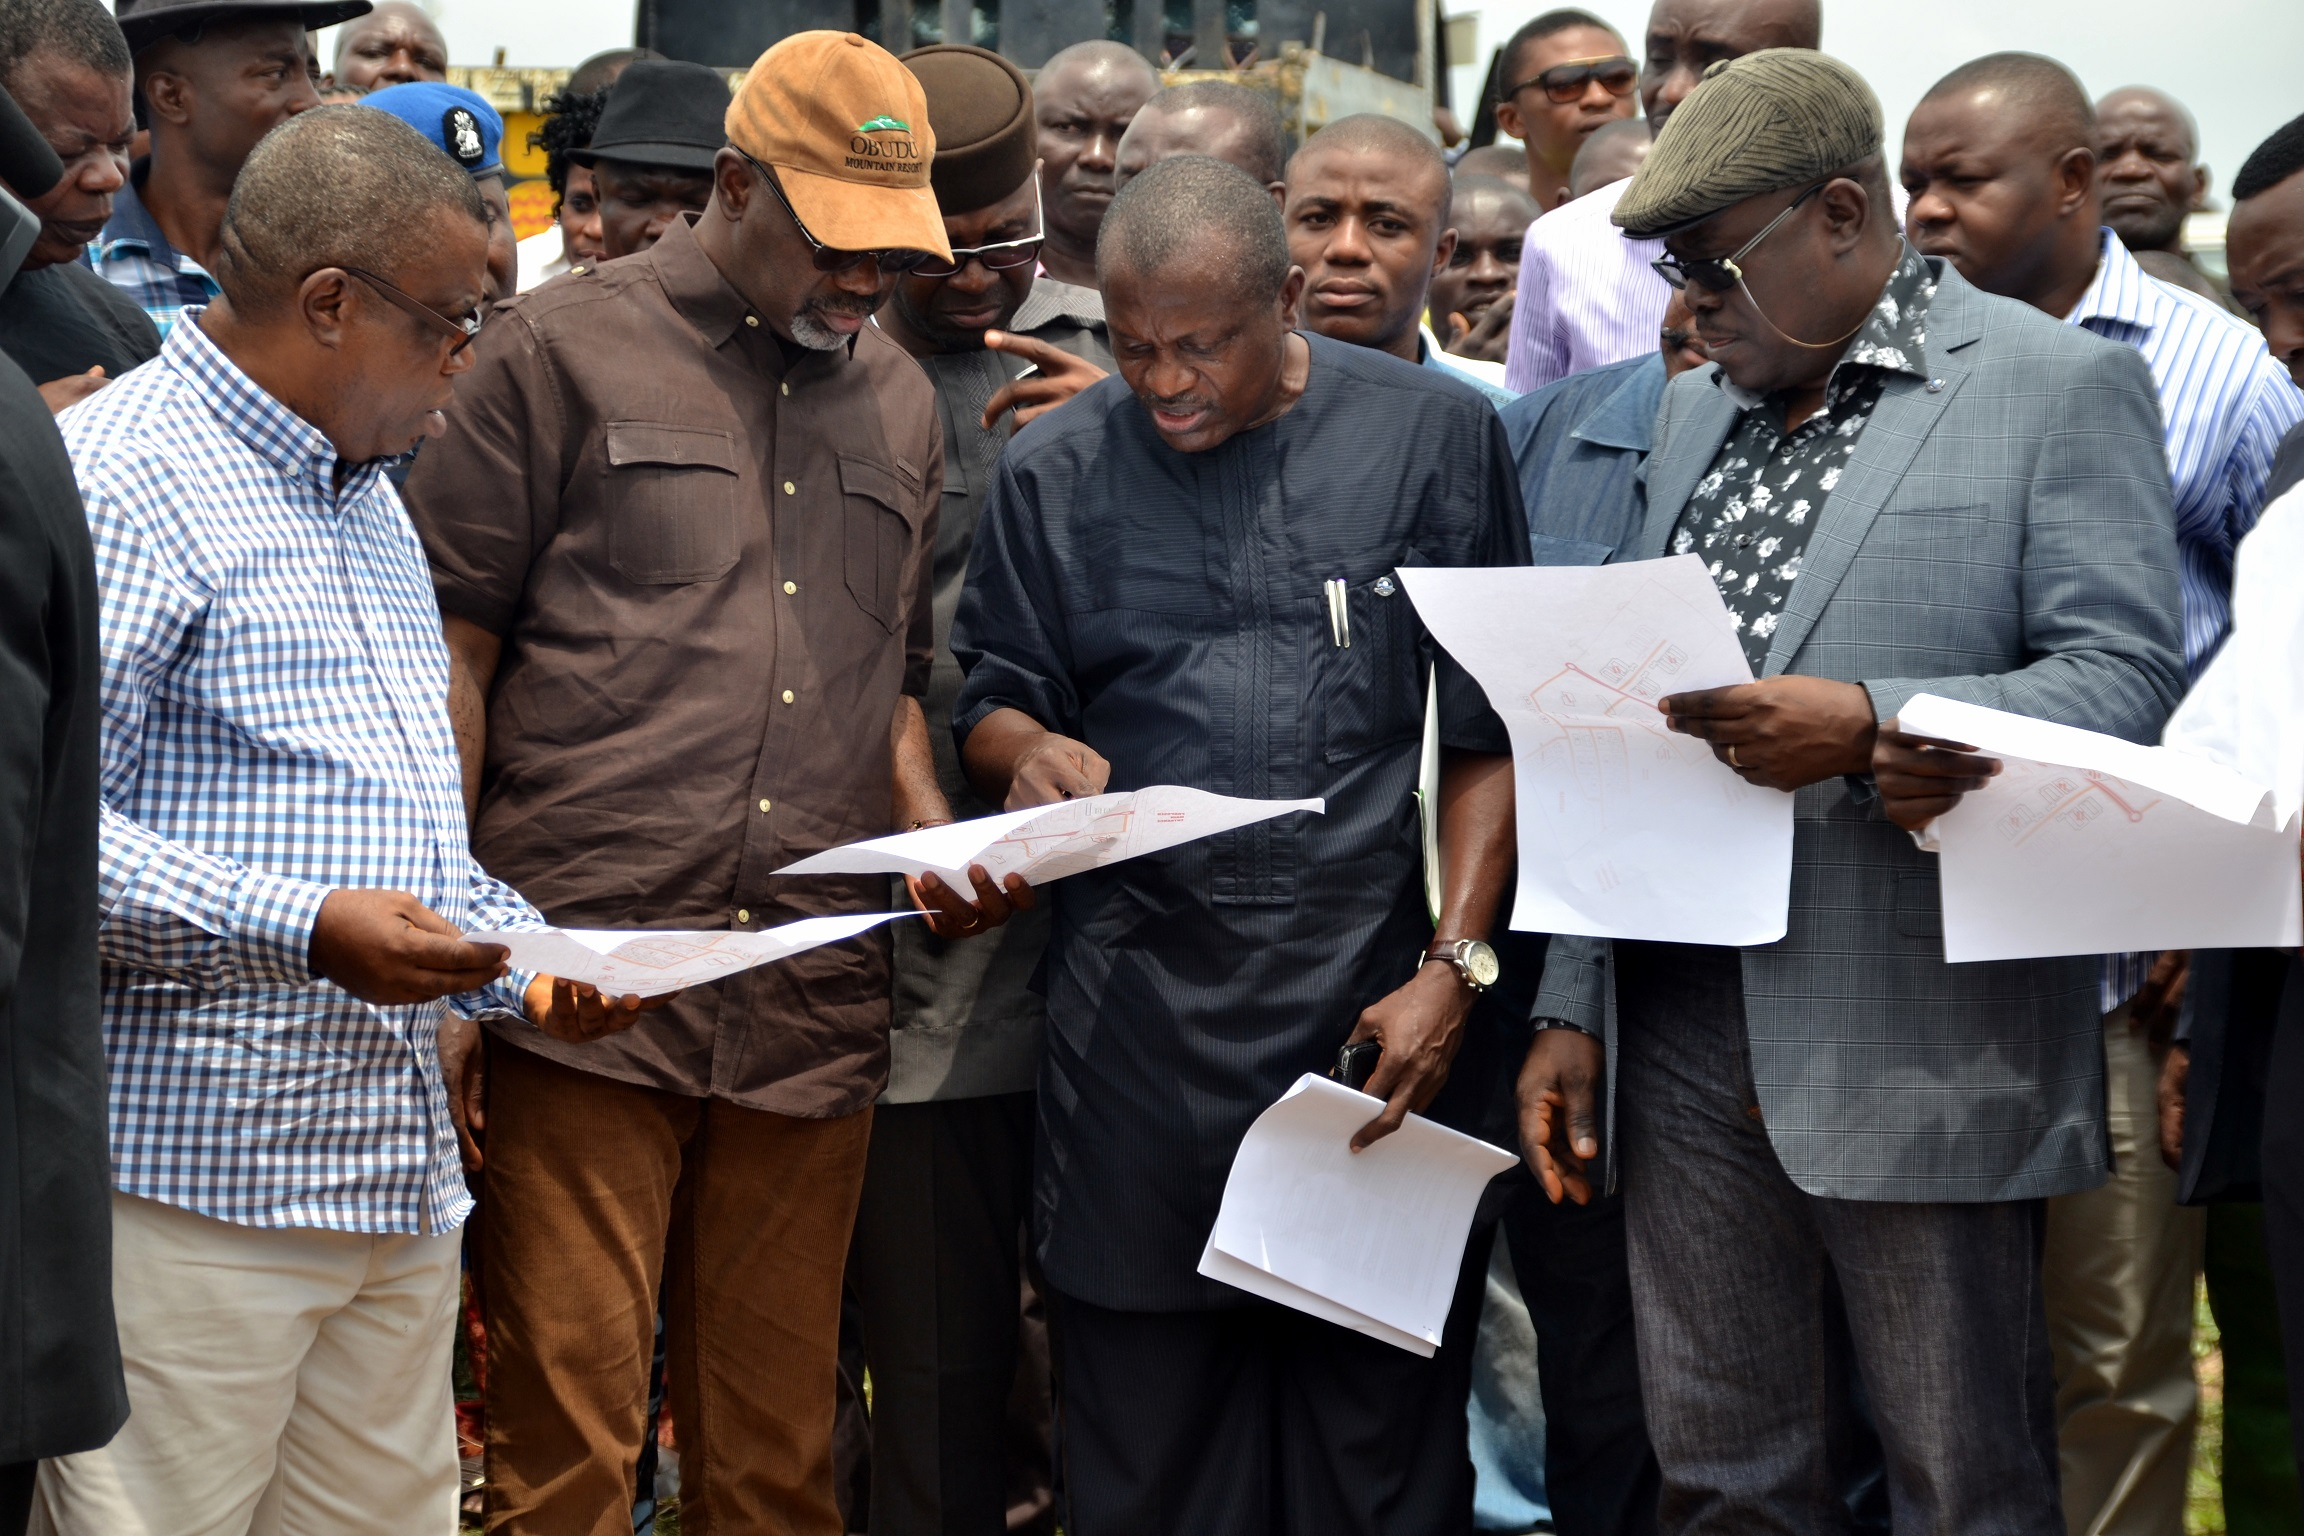 Cross River State Governor, Senator Liyel Imoke(2nd left) flanked by Chairman Planning Committee of the Institute of Technology and Management, Prof Ivara Esu(L), Commissioner for Special Projects, Mr. Bassey Ika Oqua and Deputy Governor Mr. Efiok Cobham(R)examining the building plan of the proposed Institute in Ugep, Yakurr Local Government Area yesterday